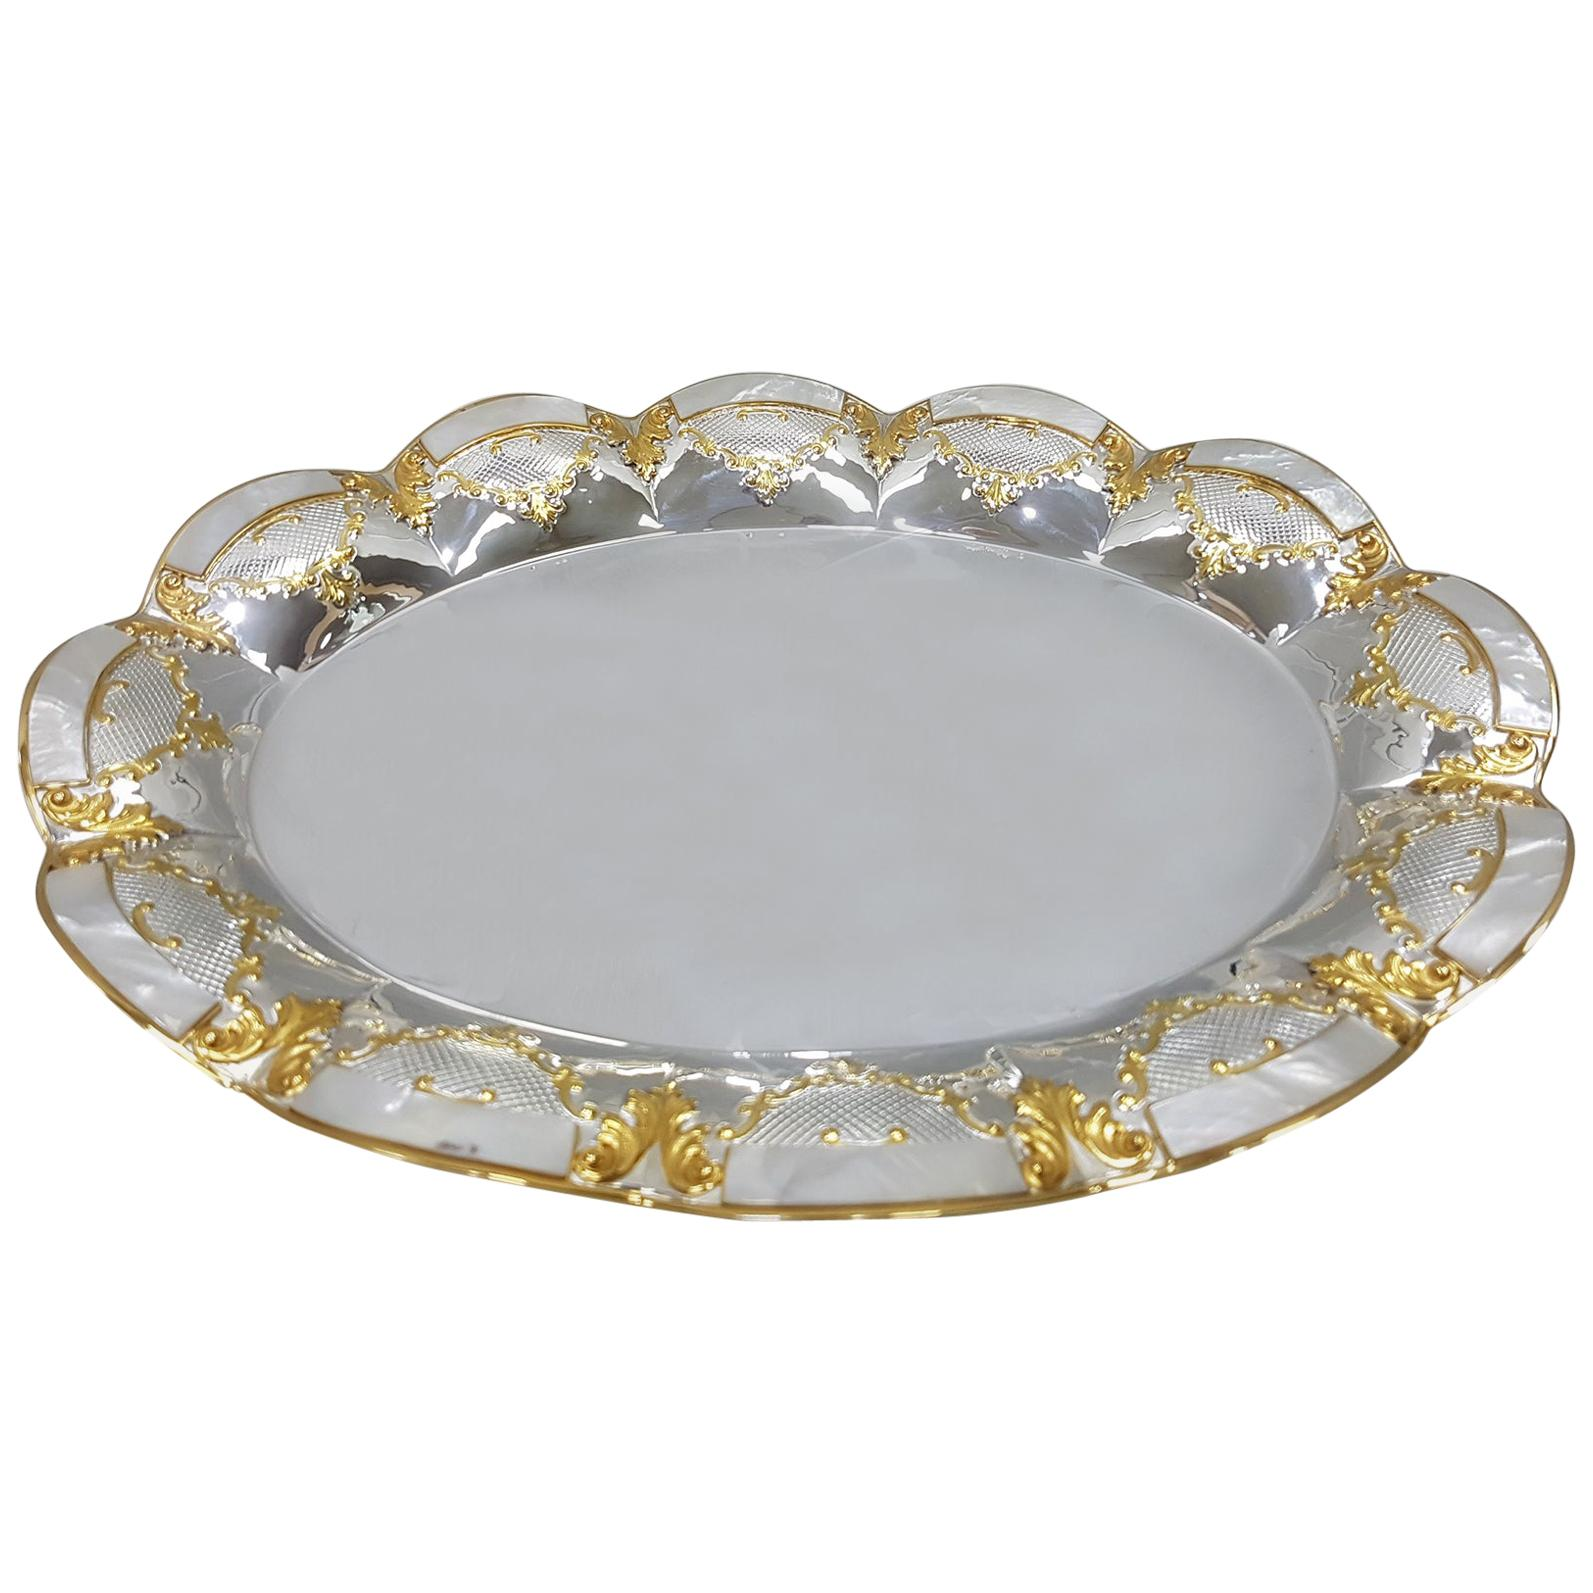 20th Century Italian Oval Silver Centerpiece with Mother of Pearl